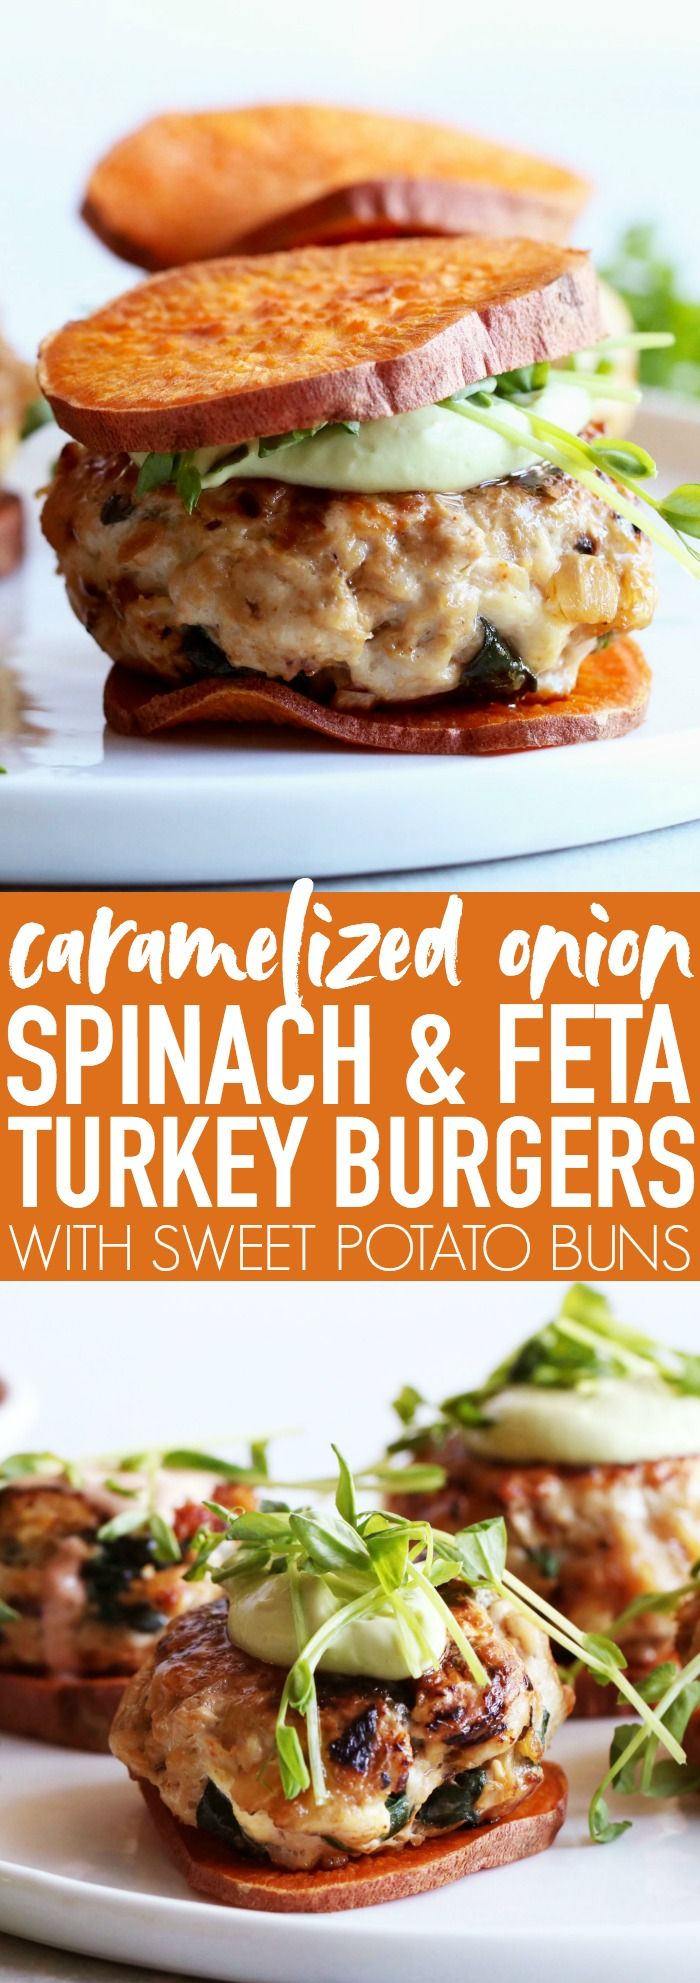 Caramelized Onion Spinach + Feta Turkey Burgers | gluten free | recipes | recipe | tailgate | game day | super bowl | low carb | healthy | fresh | clean eating | healthyish | low ingredient | easy | the easiest | quick | simple | make ahead | meat | | lovers |